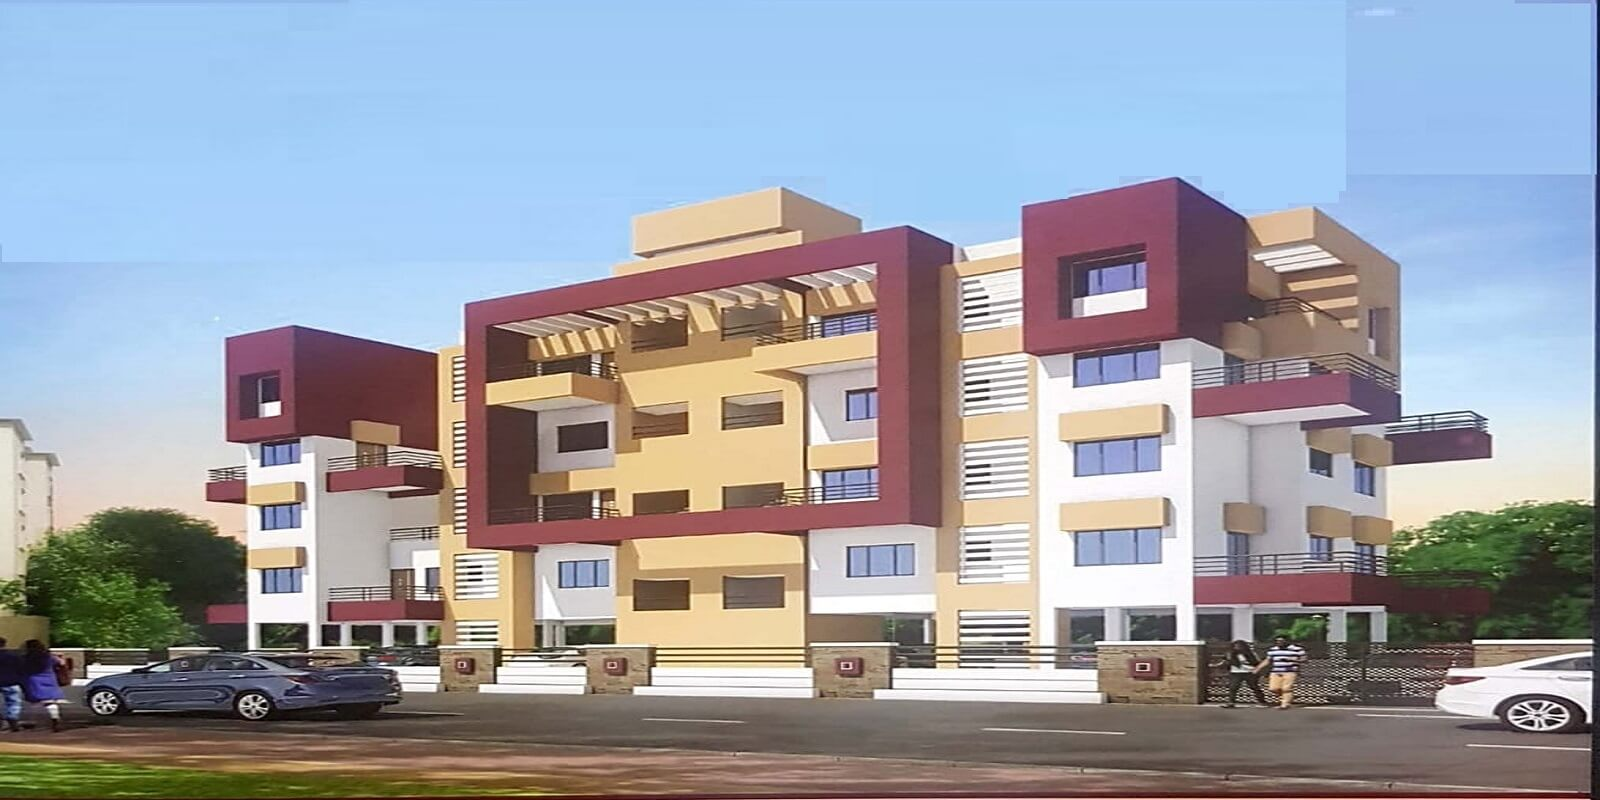 onkar shreesamarth residency project large image1